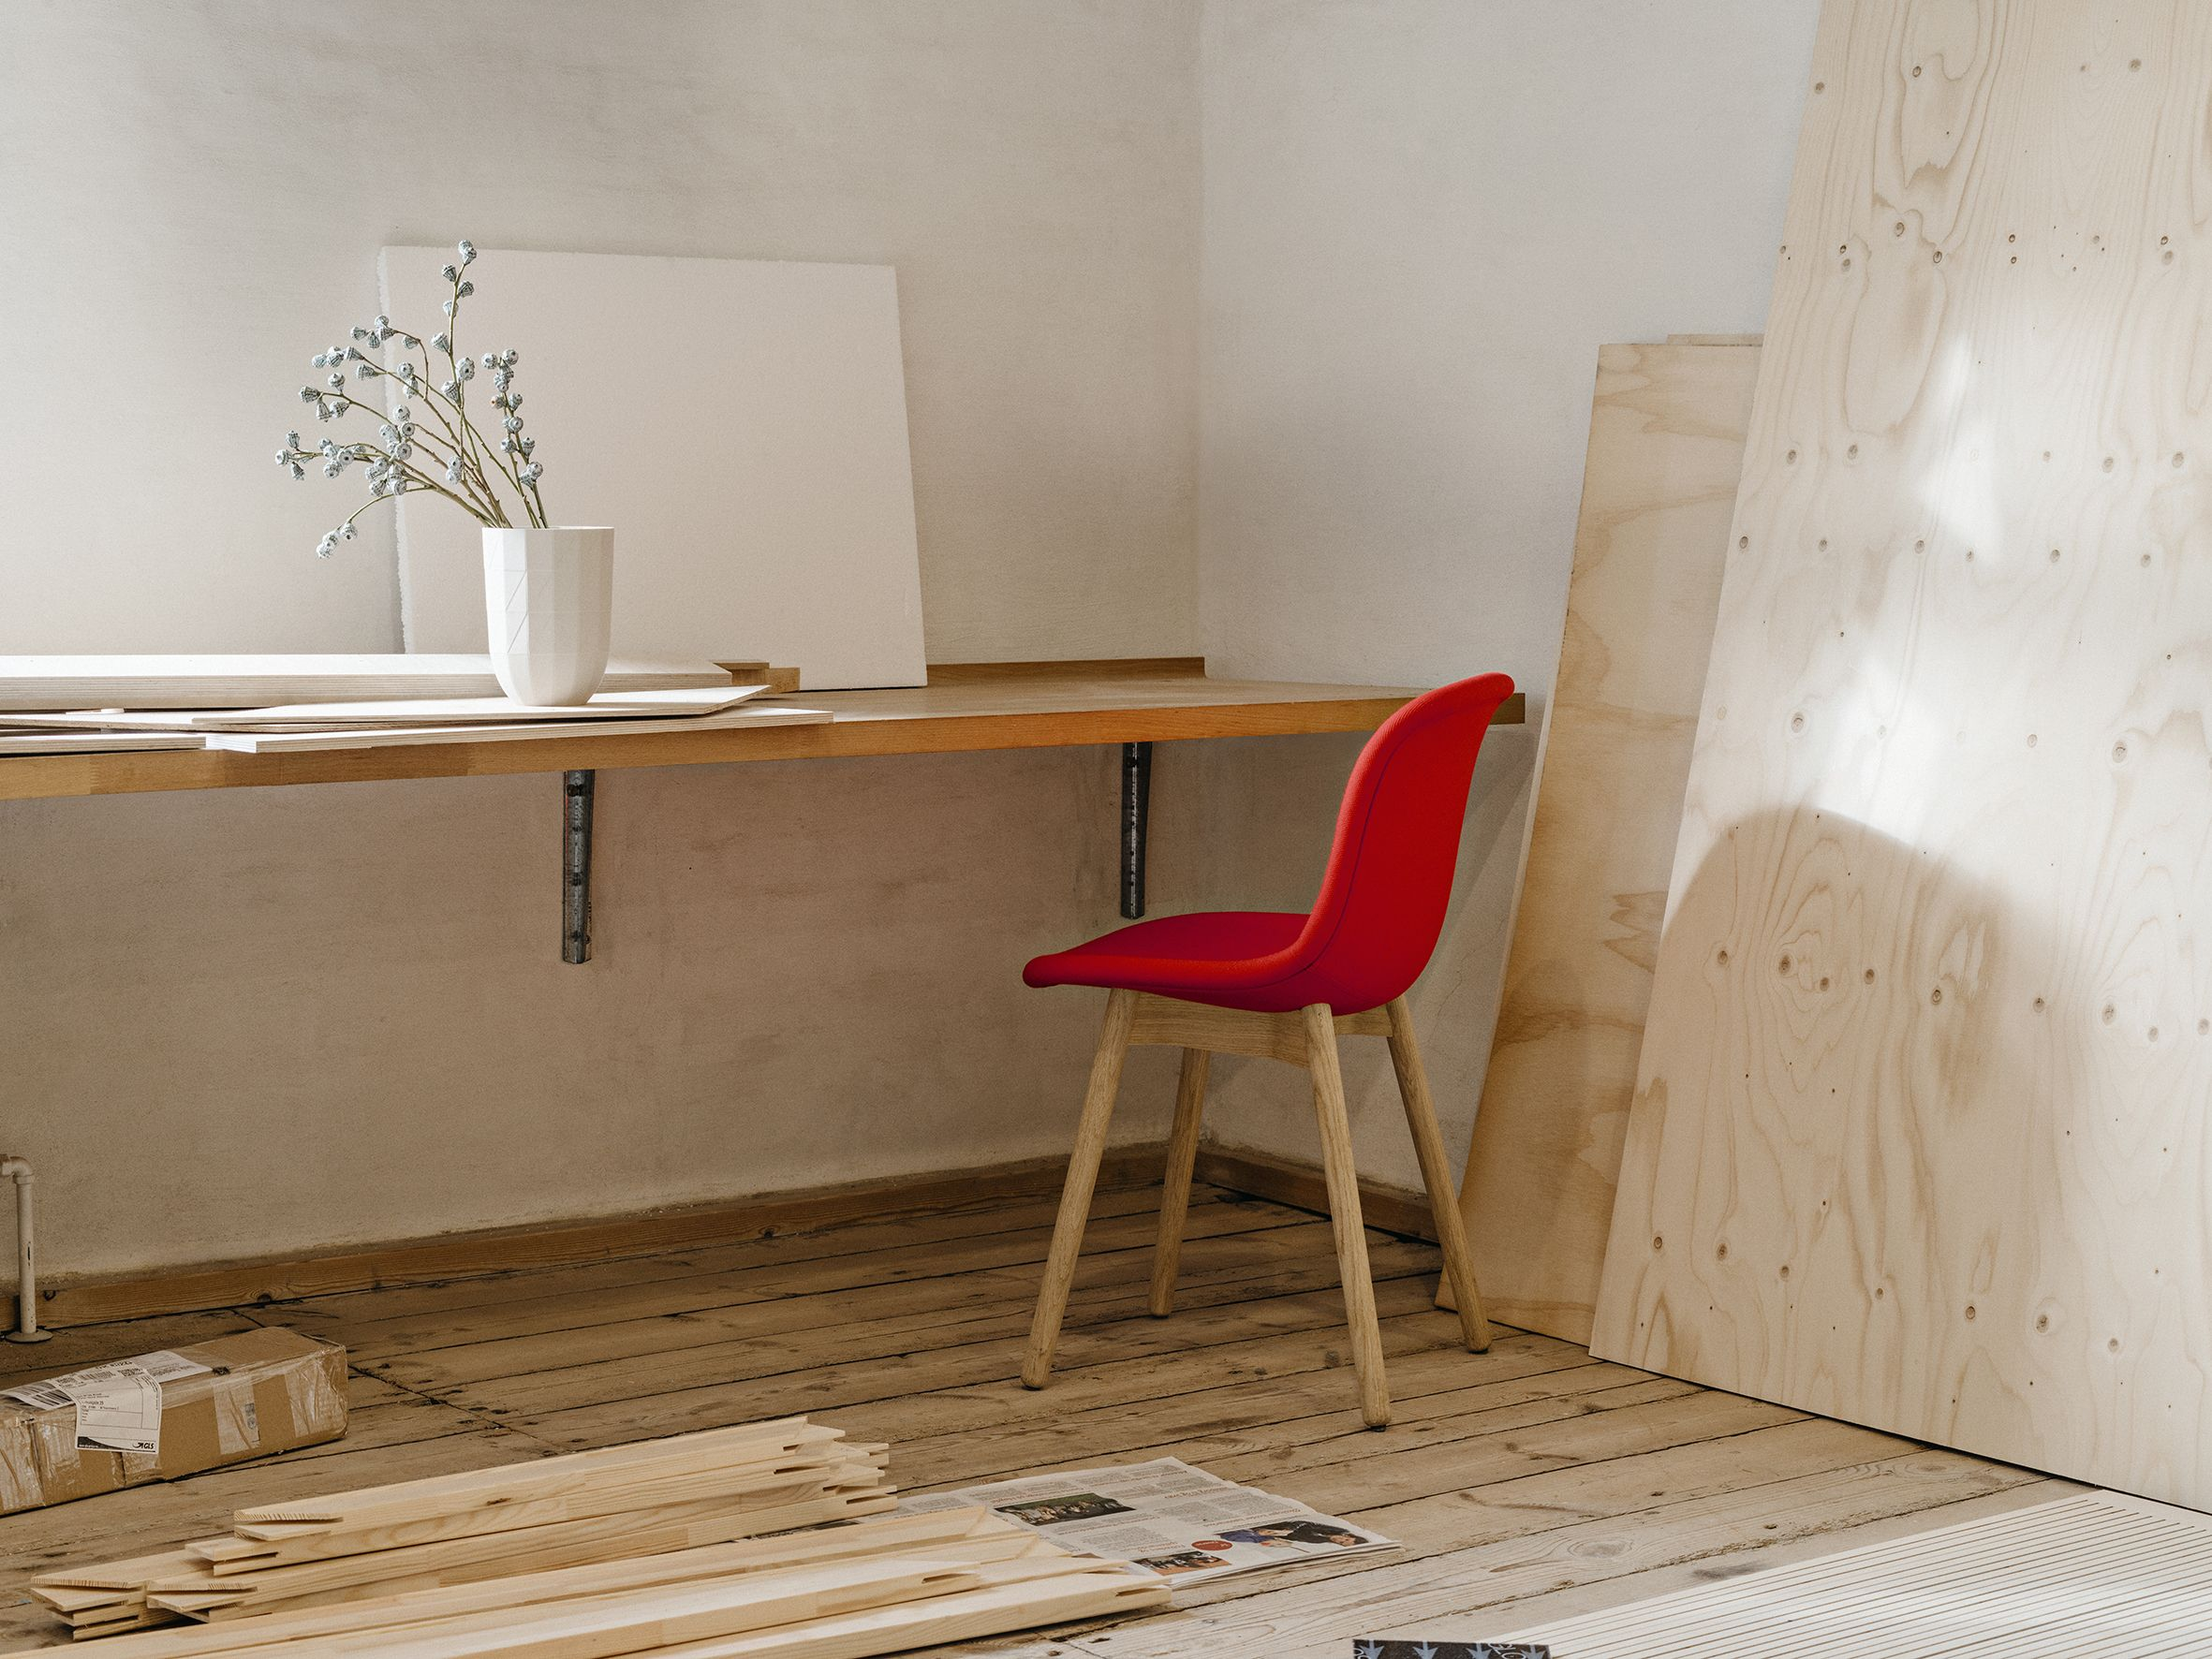 Neu 13 upholstery chair.   OFFICE   Pinterest   Upholstery and Bedrooms